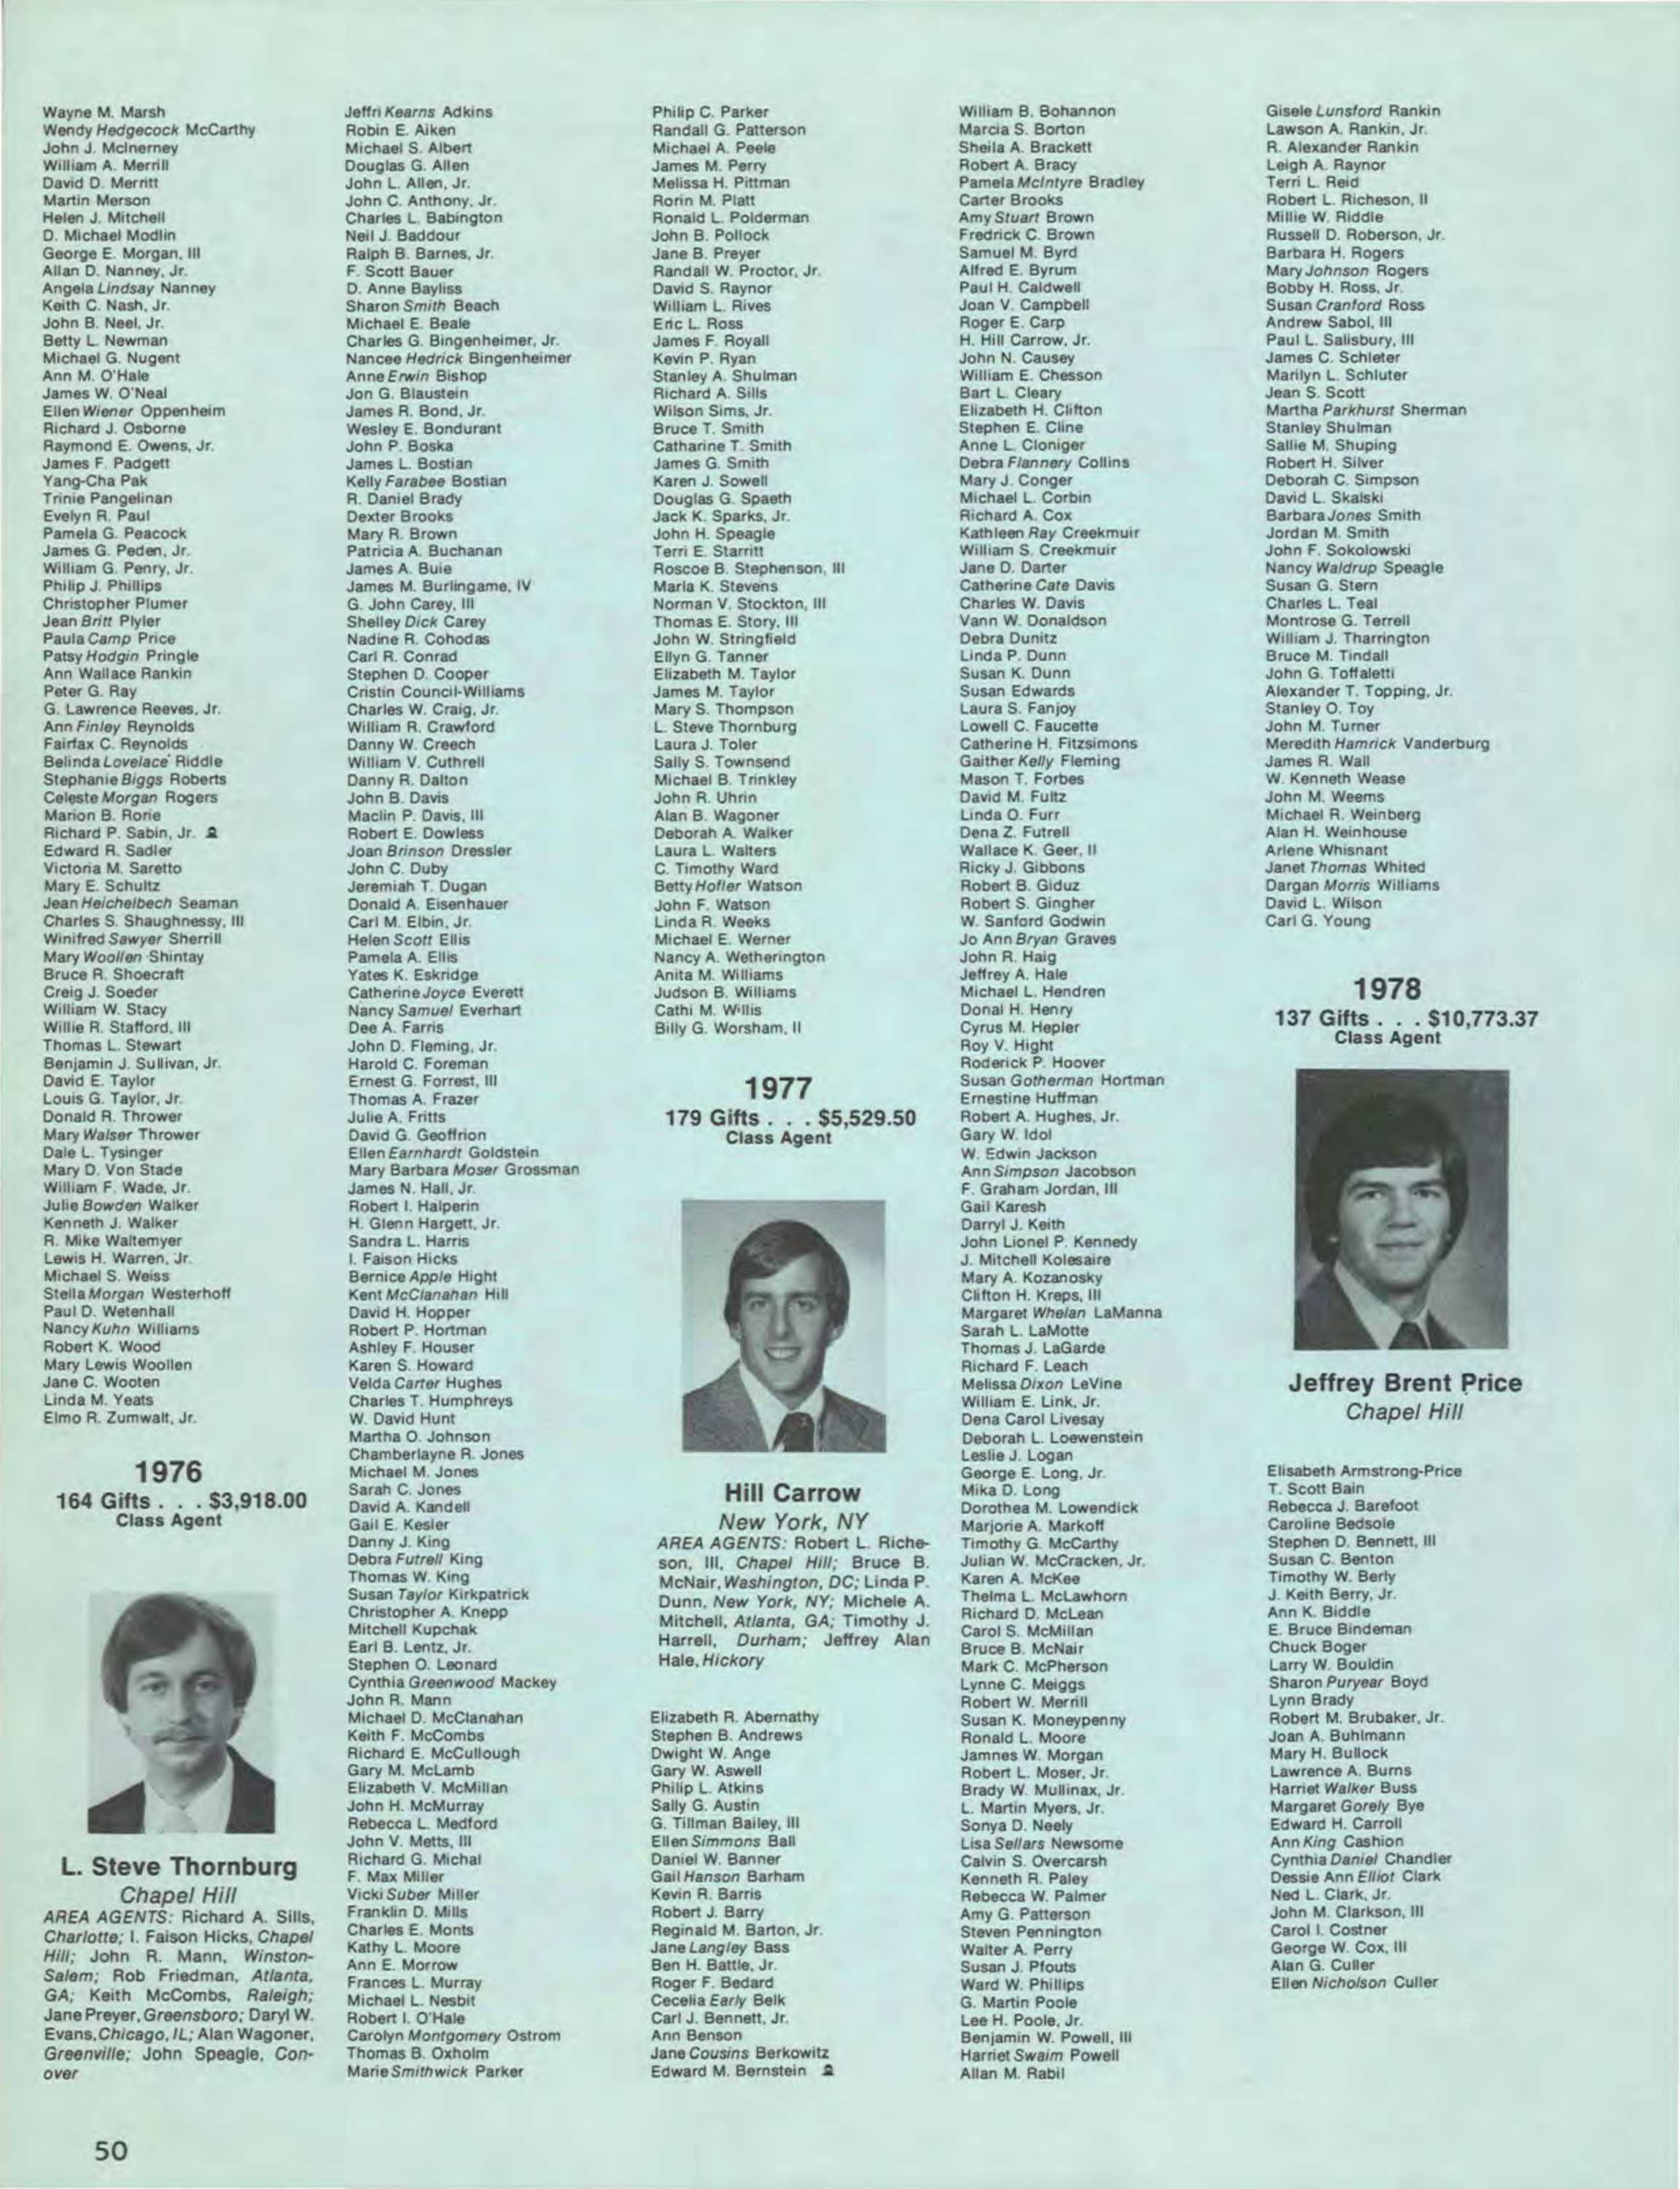 Carolina Alumni Review - September 1979 - page HR49